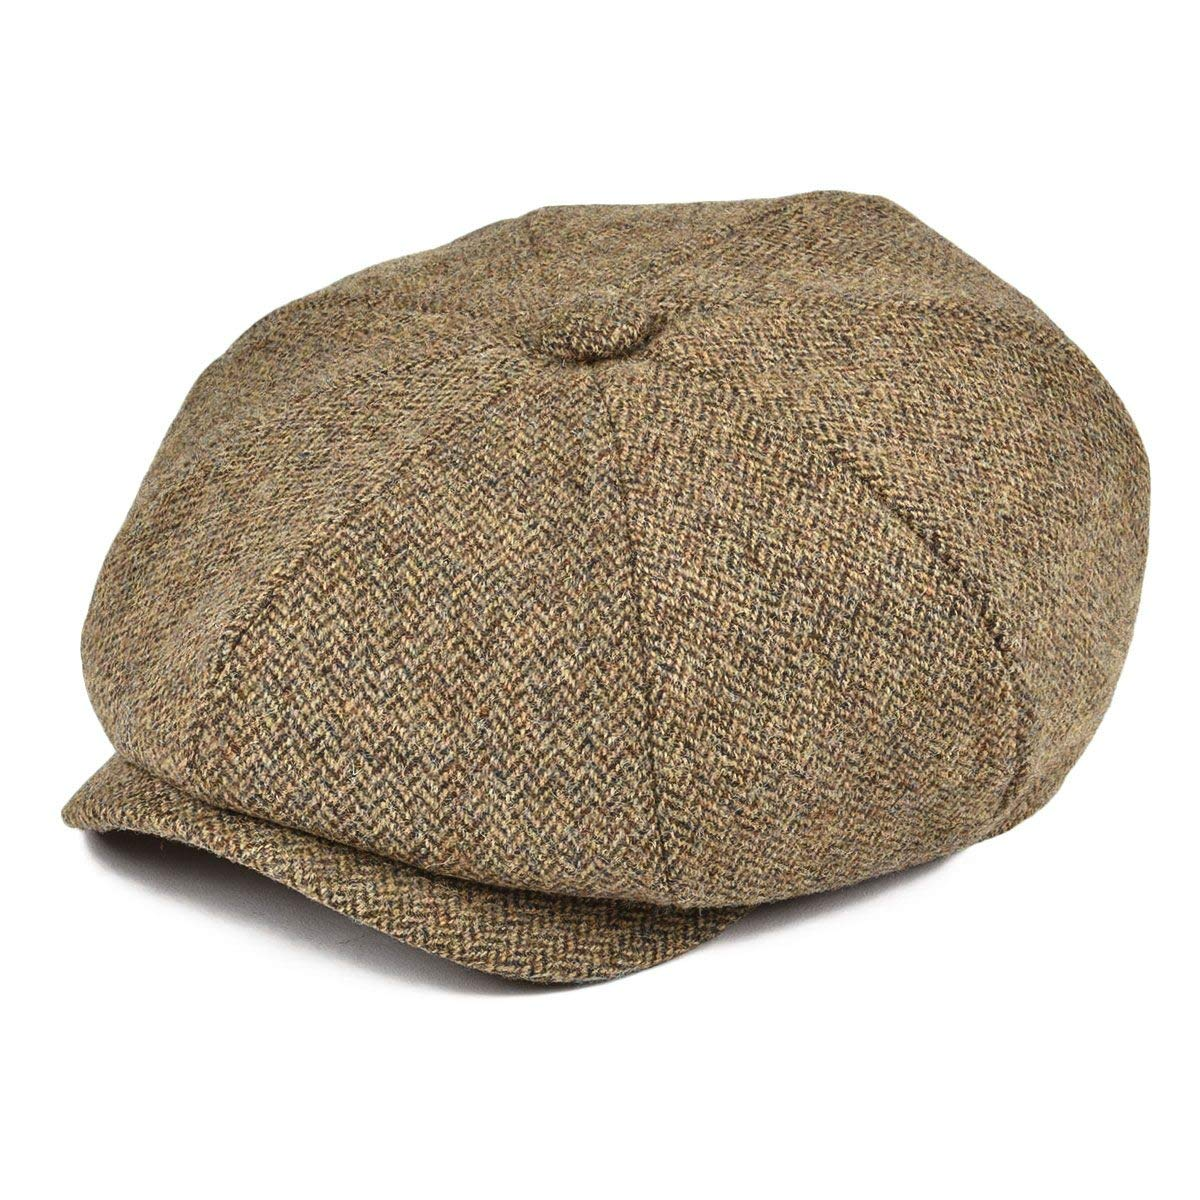 1920s Men's Clothing BOTVELA Mens Premium Wool Classic Flat Ivy Newsboy Cap Herringbone Pattern Flecked Hat $29.99 AT vintagedancer.com